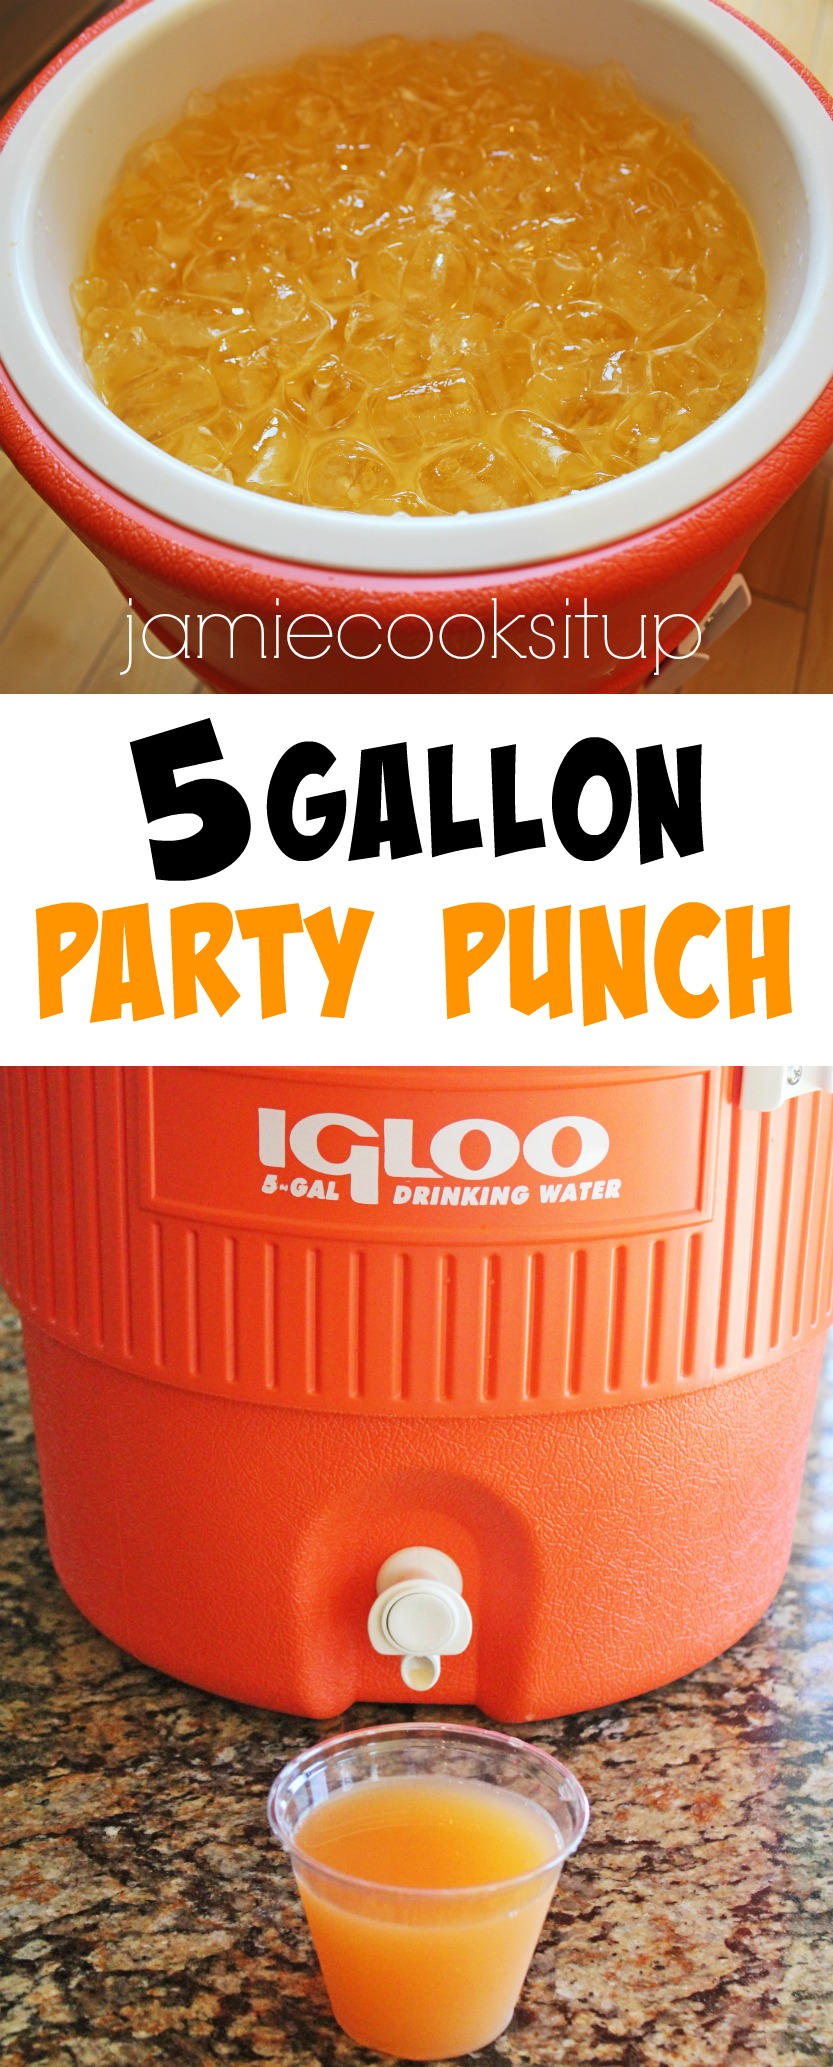 5 Gallon Party Punch | Jamie Cooks It Up - Family Favorite Food ...